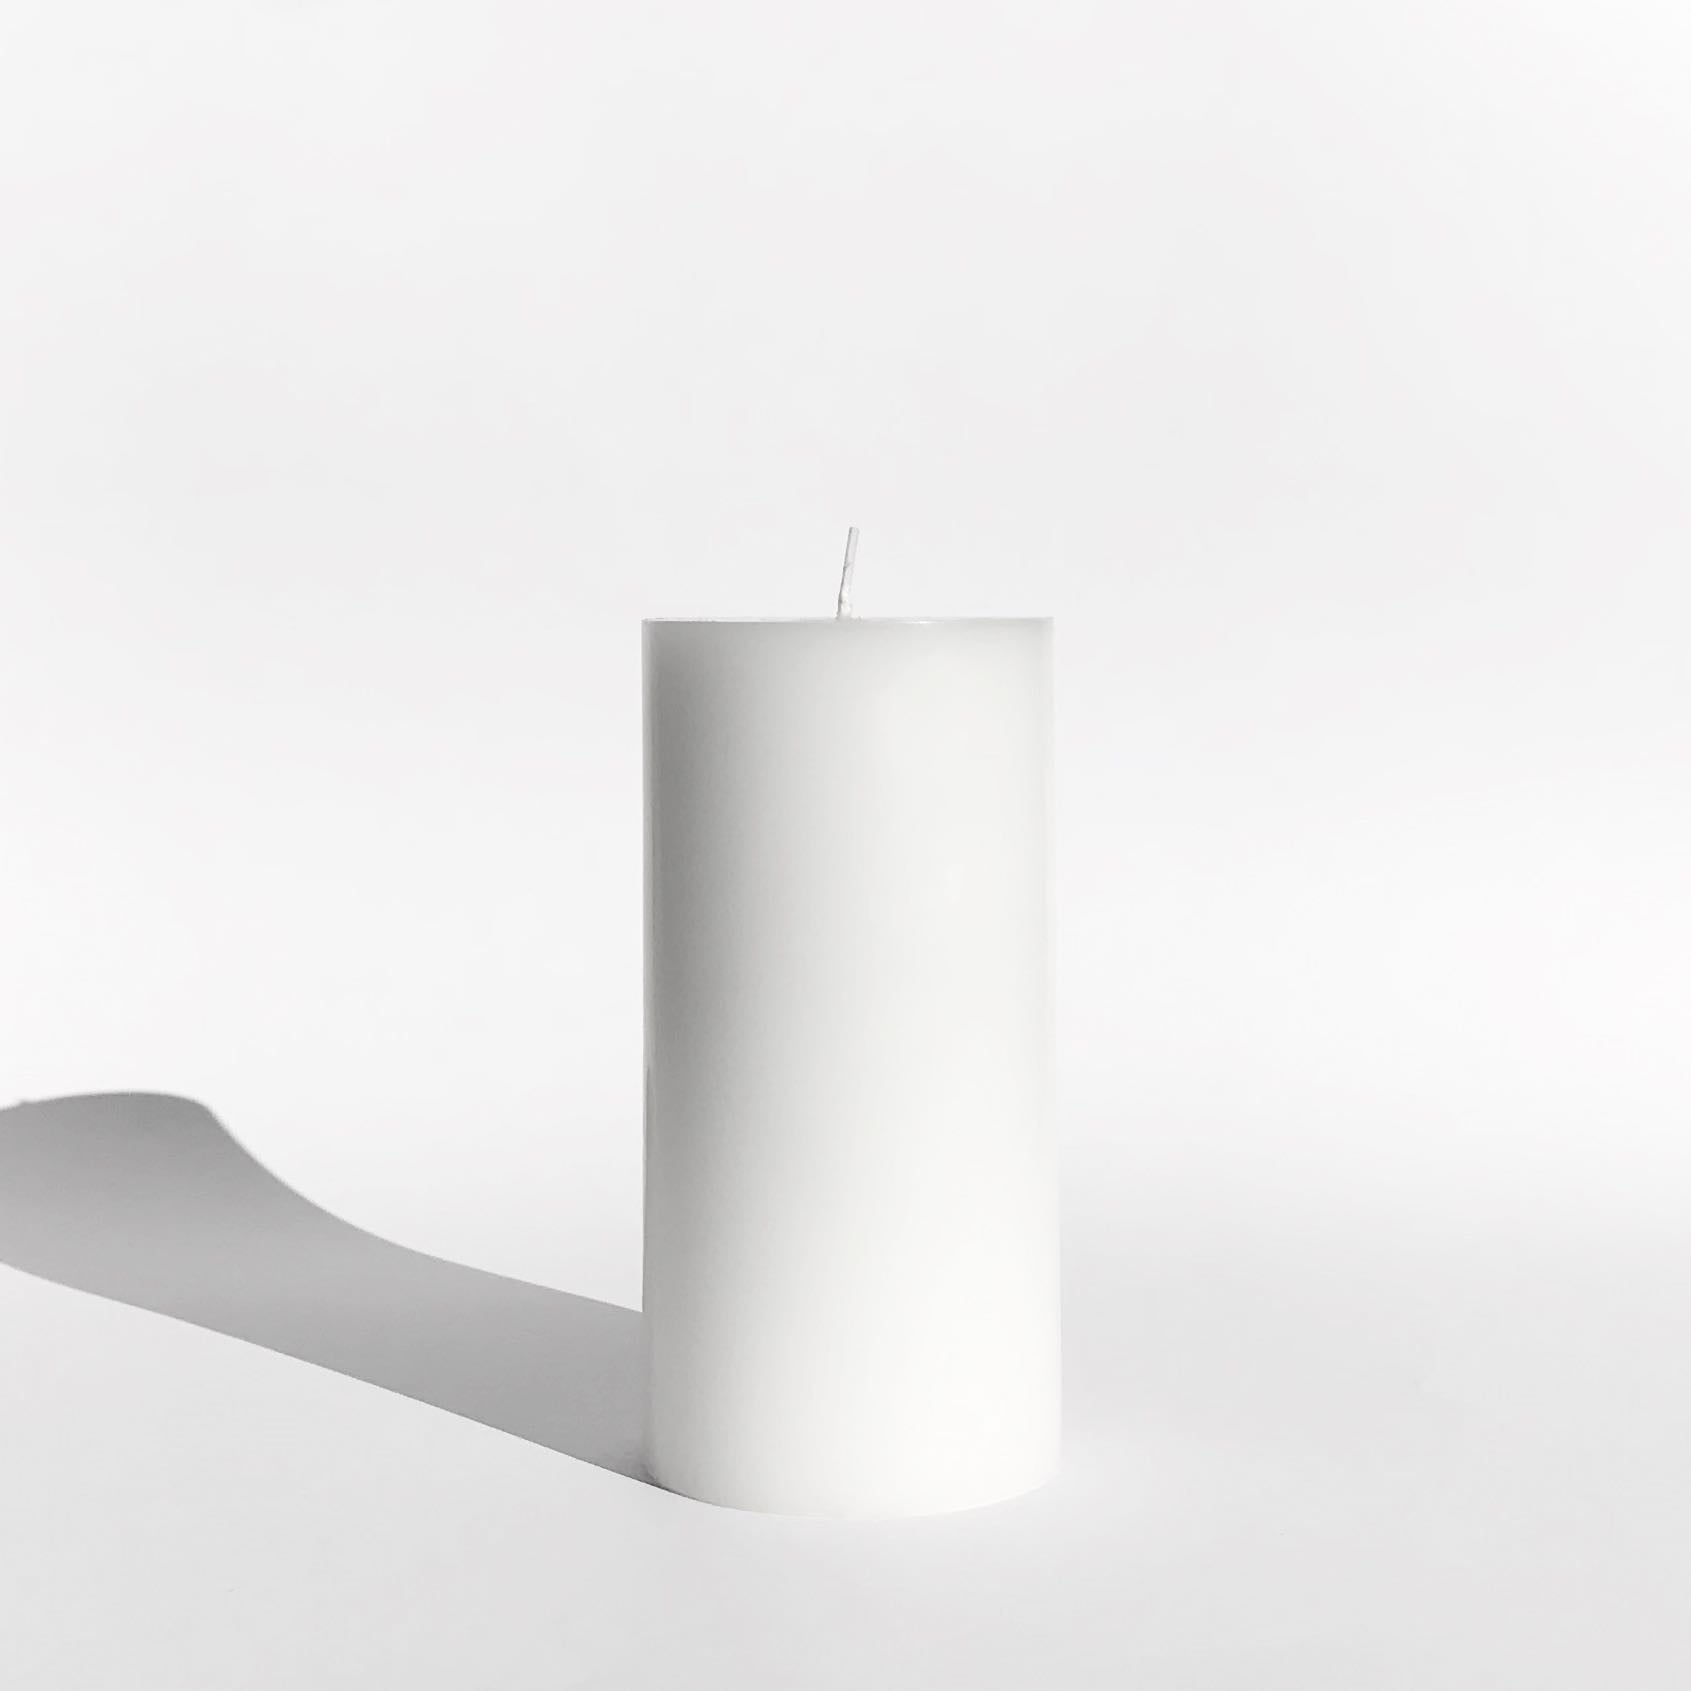 Snow white pillar candle